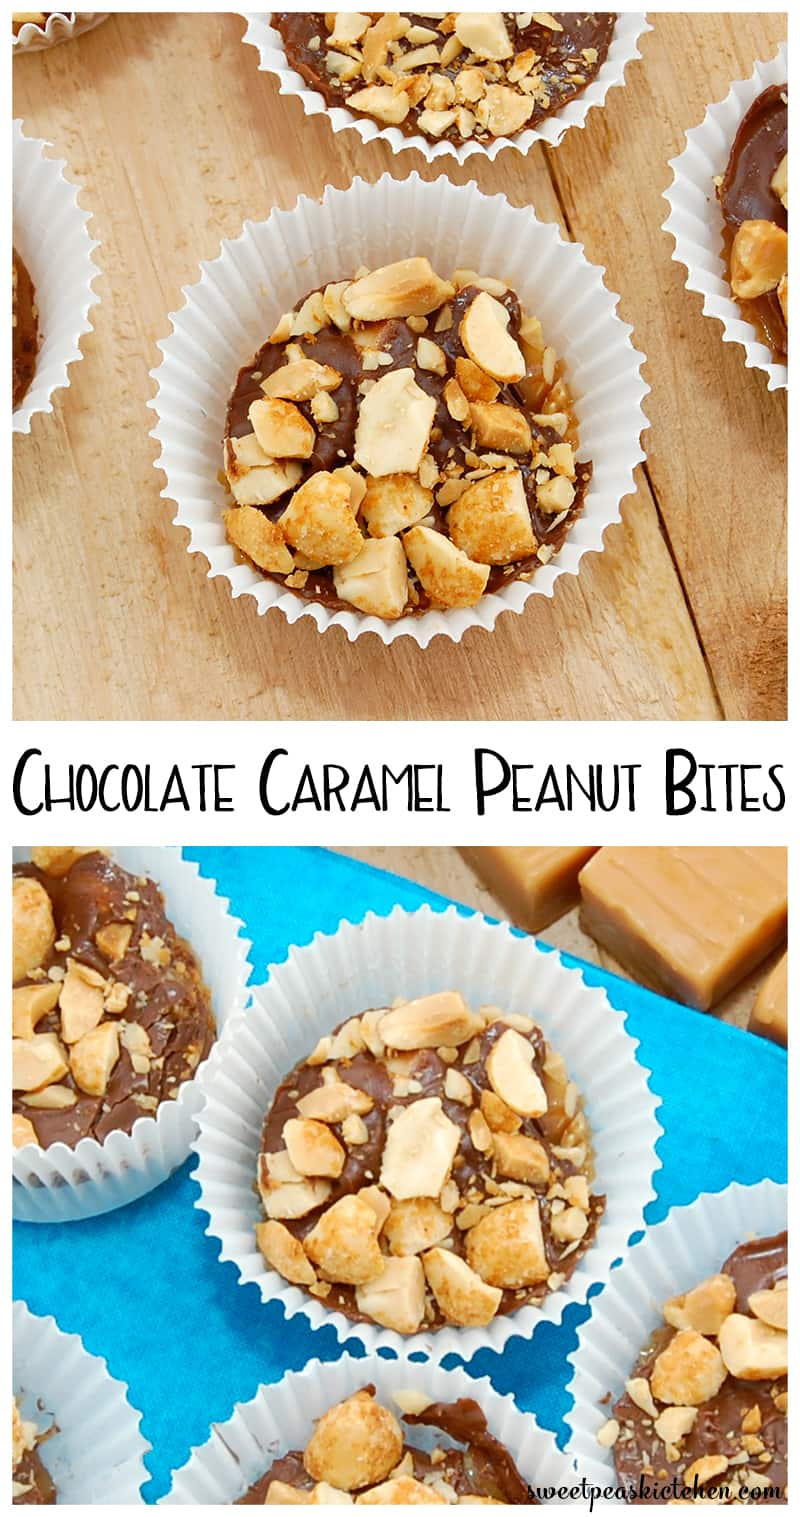 Chocolate Snack Bites With Caramel And Peanuts - PIN Image